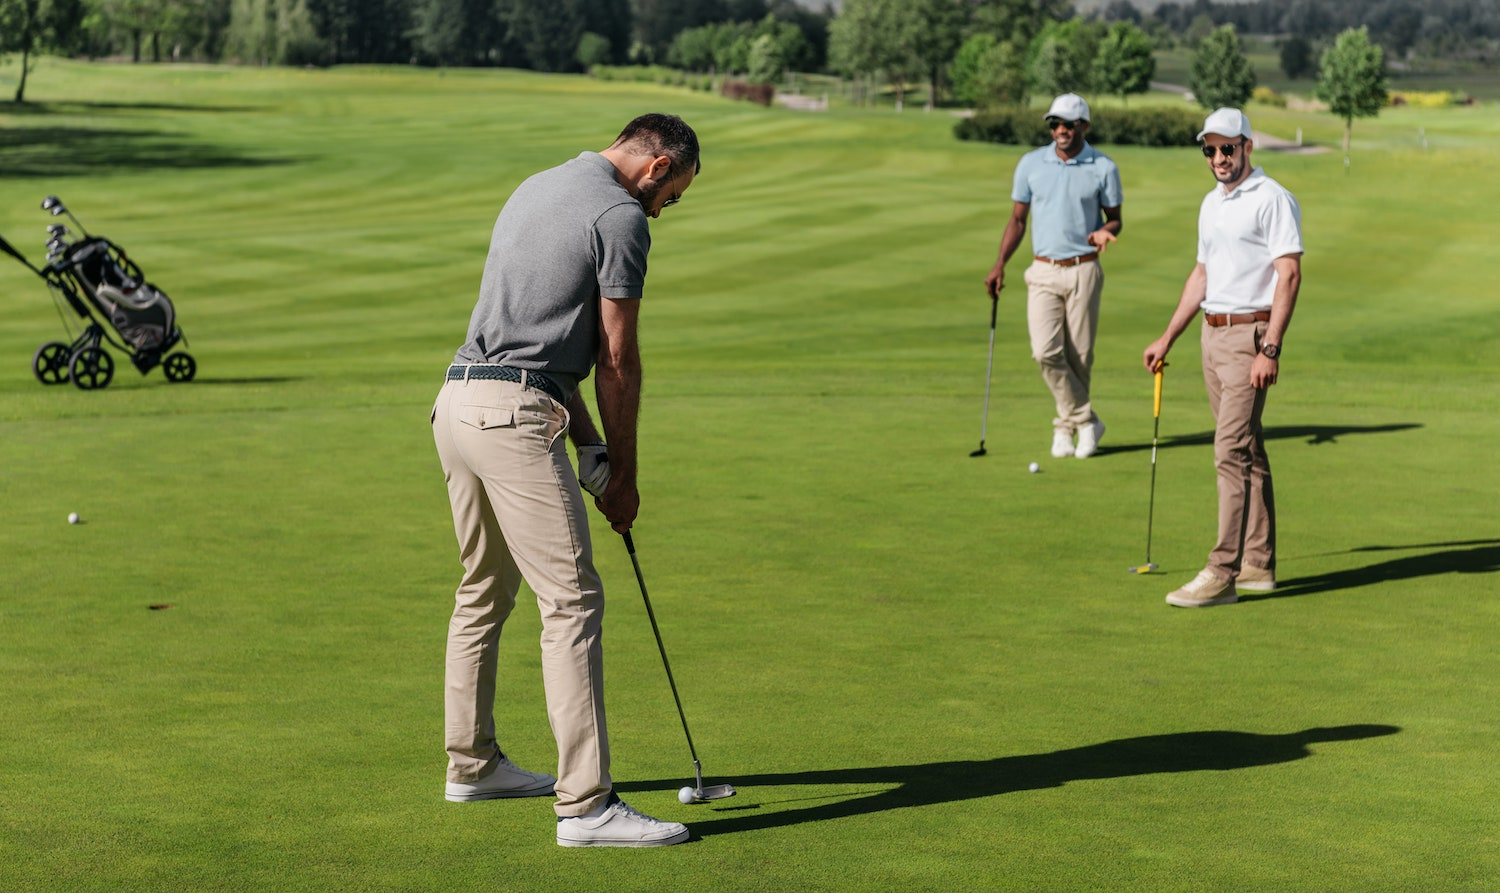 Five Fun Golf Games You Can Play with a Foursome | golf tee time reservation software